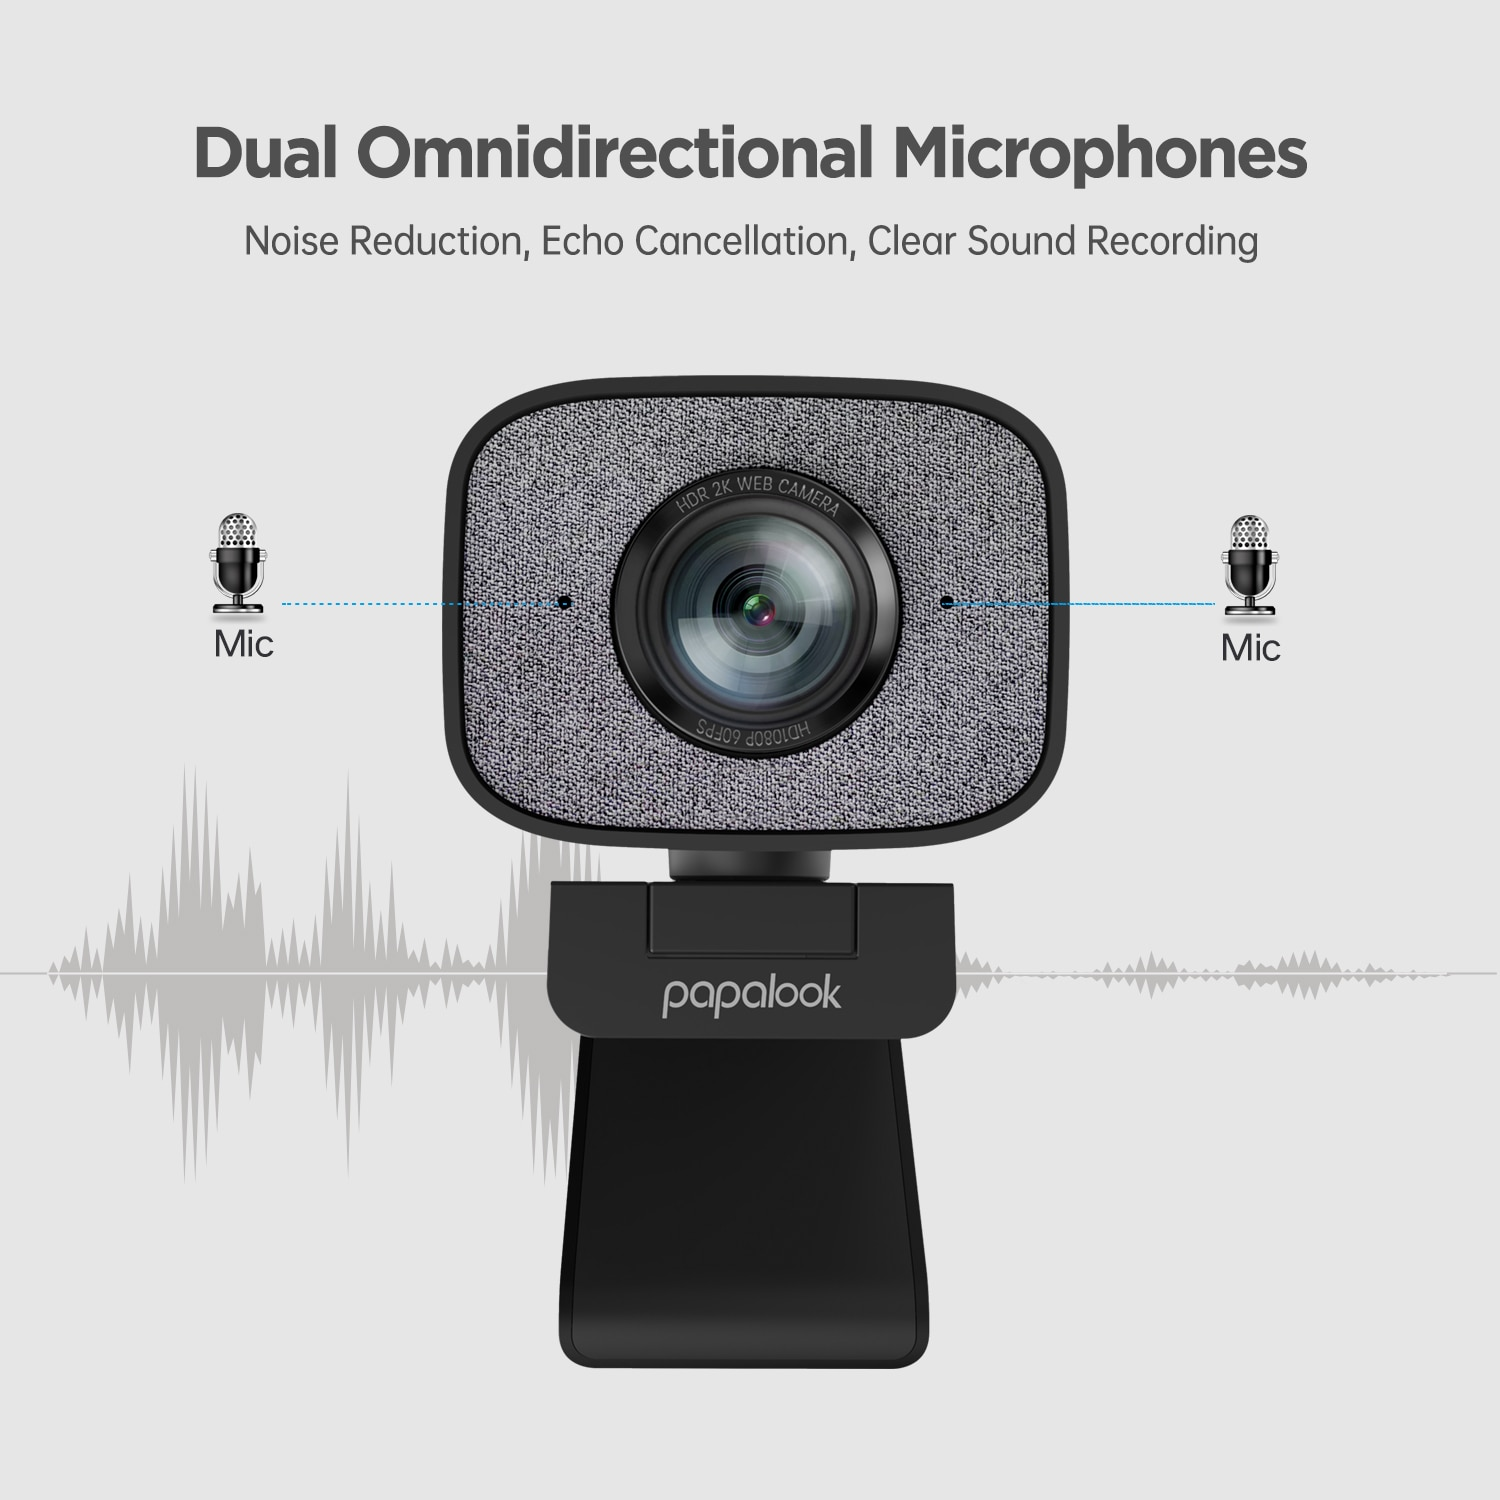 60FPS 1080P Webcam PC, PAPALOOK PA930 2K HDR Streaming Live Web Camera with Dual Stereo Mic 90Degree Angle for OBS/SKYPE/ZOOM